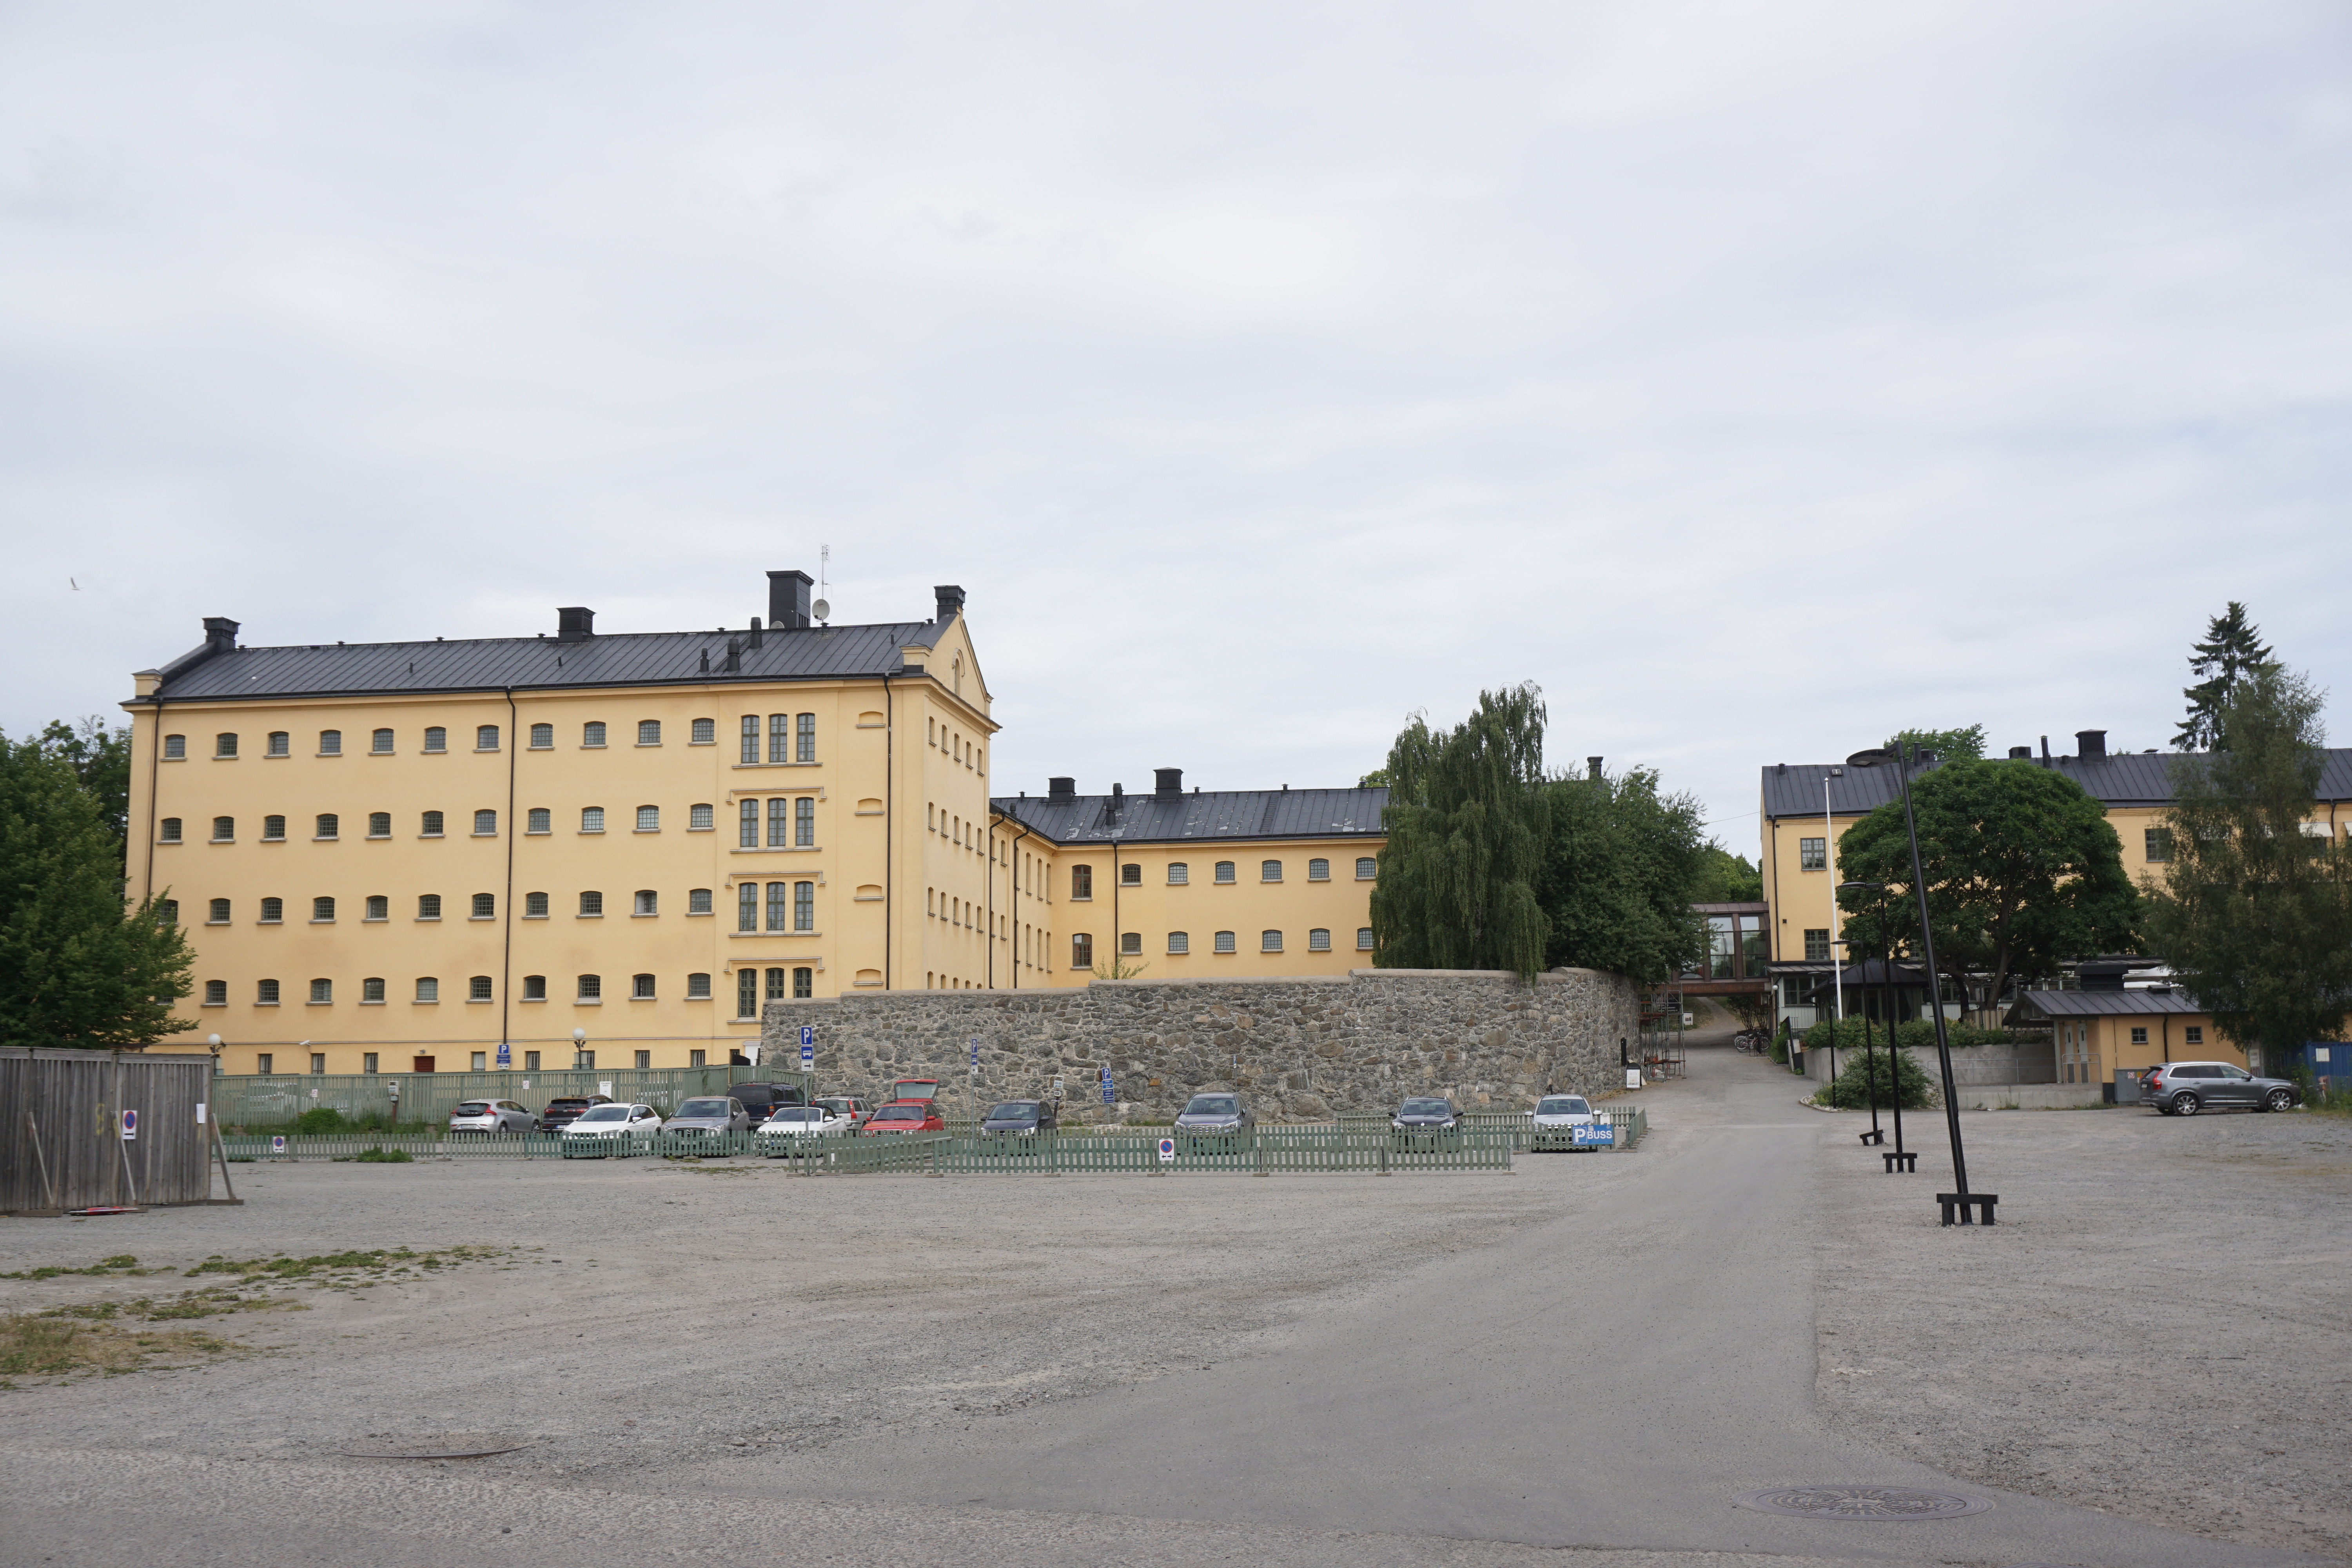 large parts of the former prison remains and have been turned into långholmen hotel and hostel